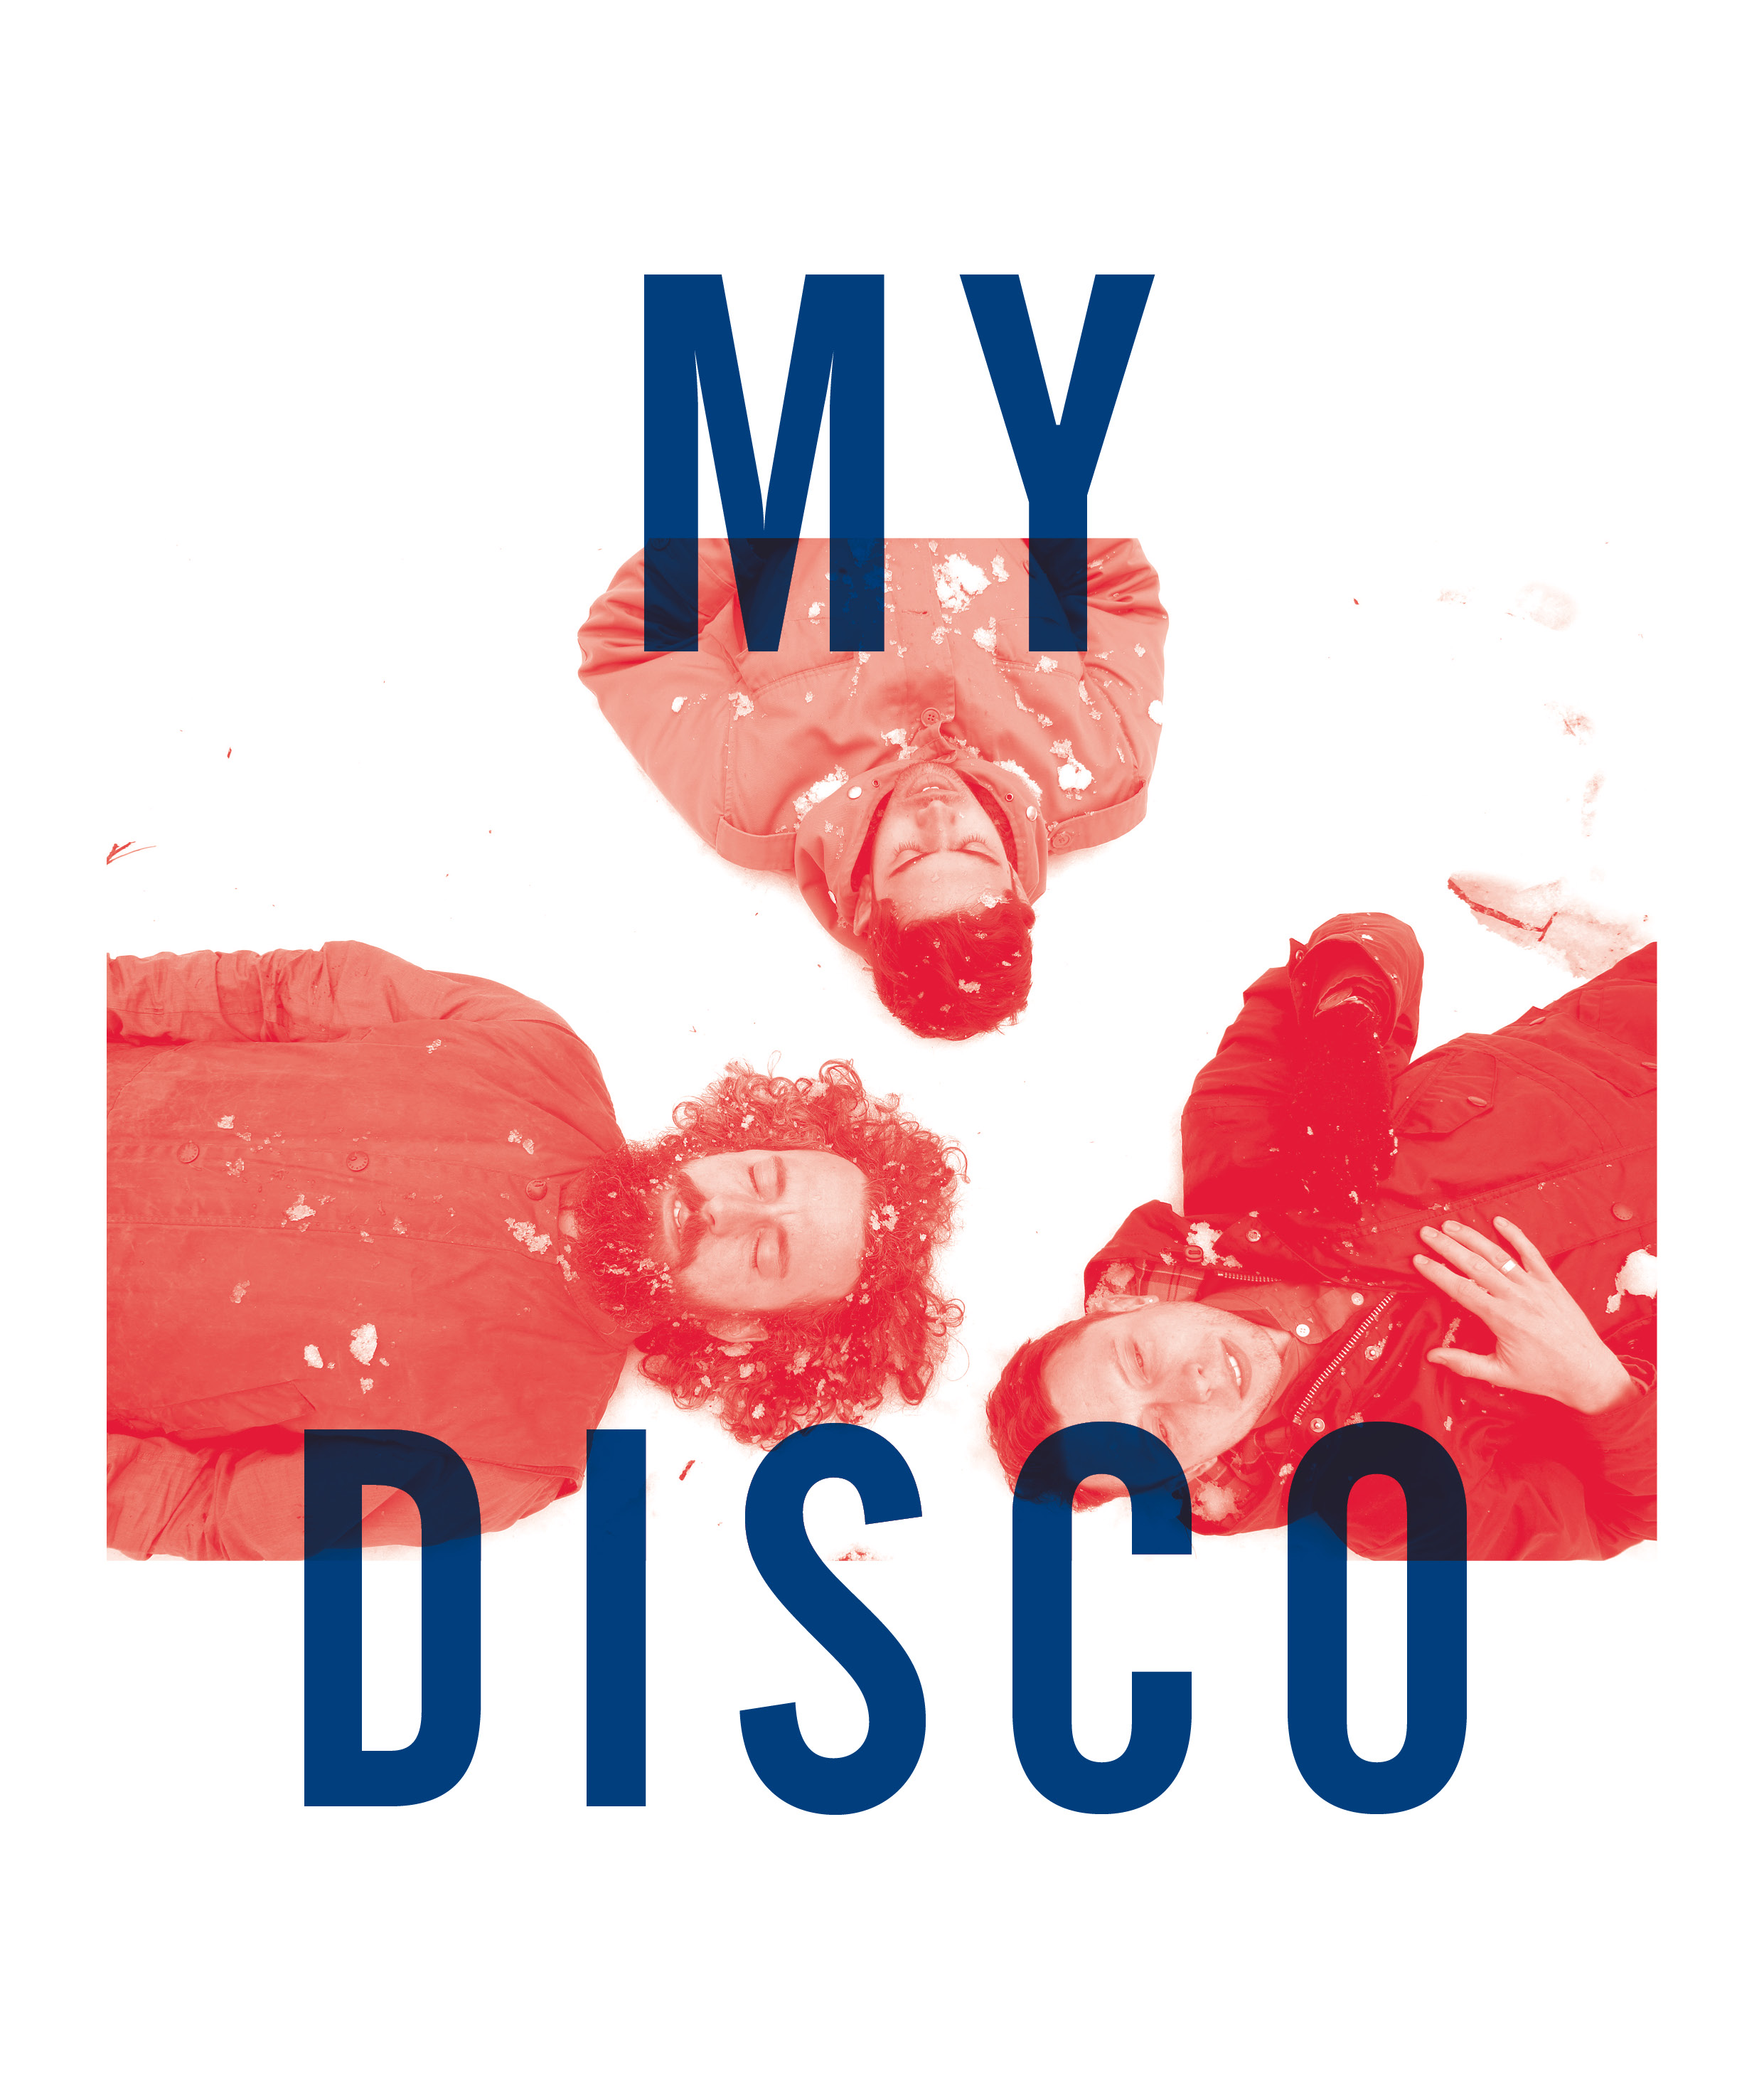 My Disco, from 'Noise In My Head: Voices From The Ugly Australian Underground' 2014. Image courtesy Melbourne Books